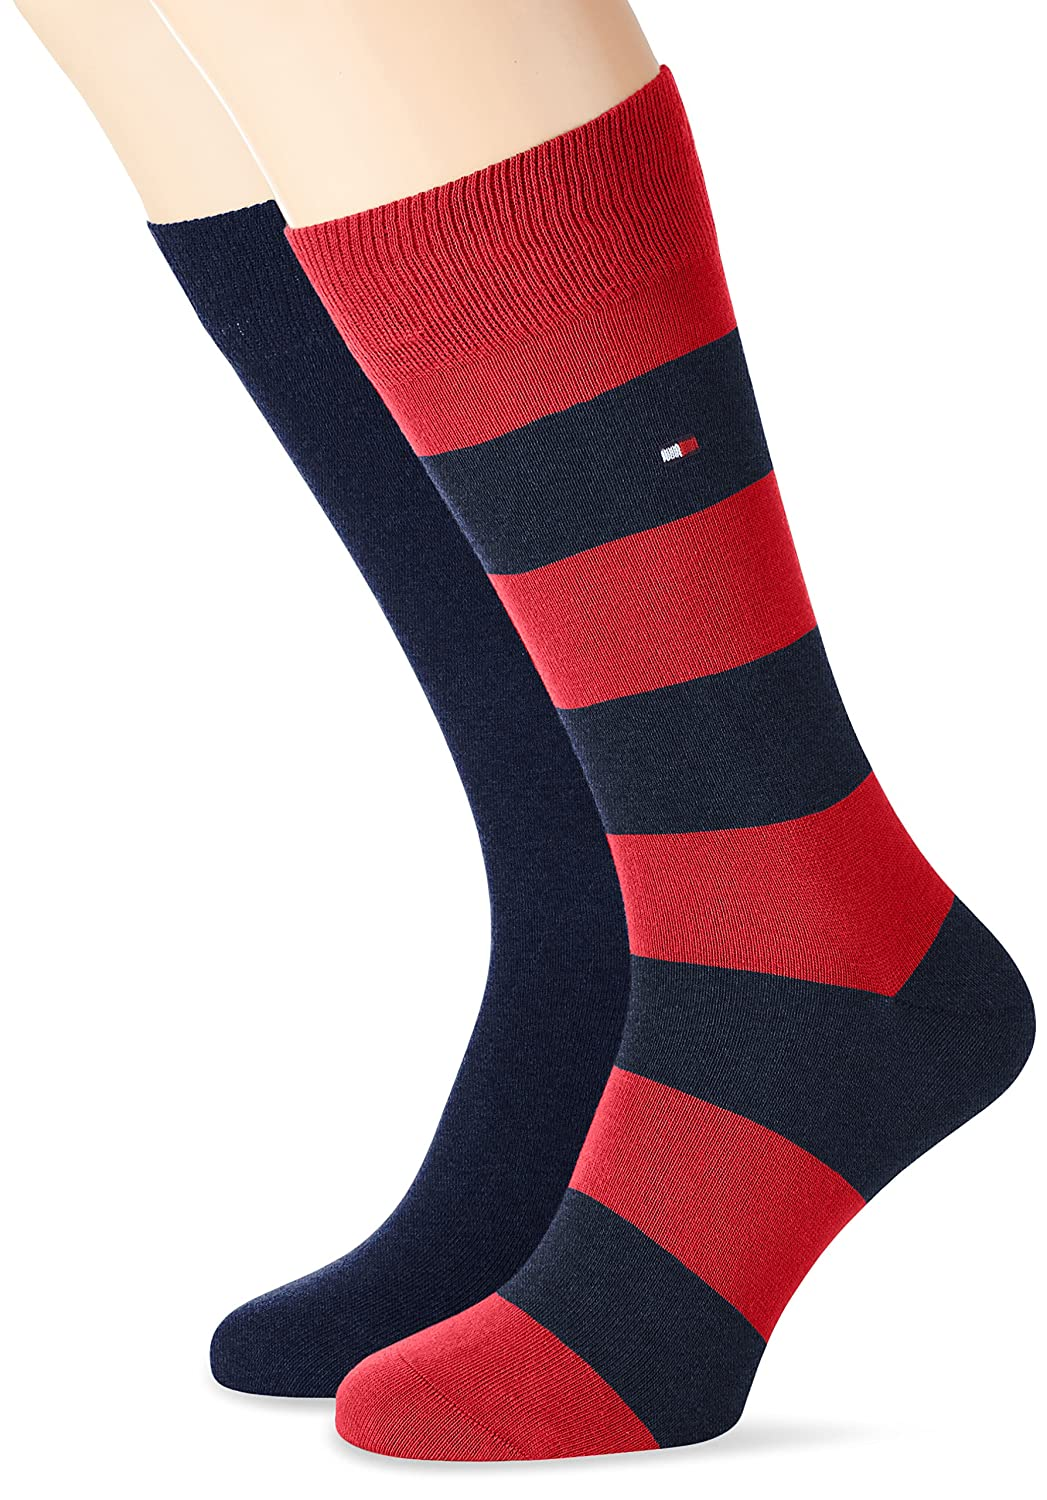 Tommy Hilfiger - TH MEN RUGBY SOCK 2P, Calze da uomo 342021001